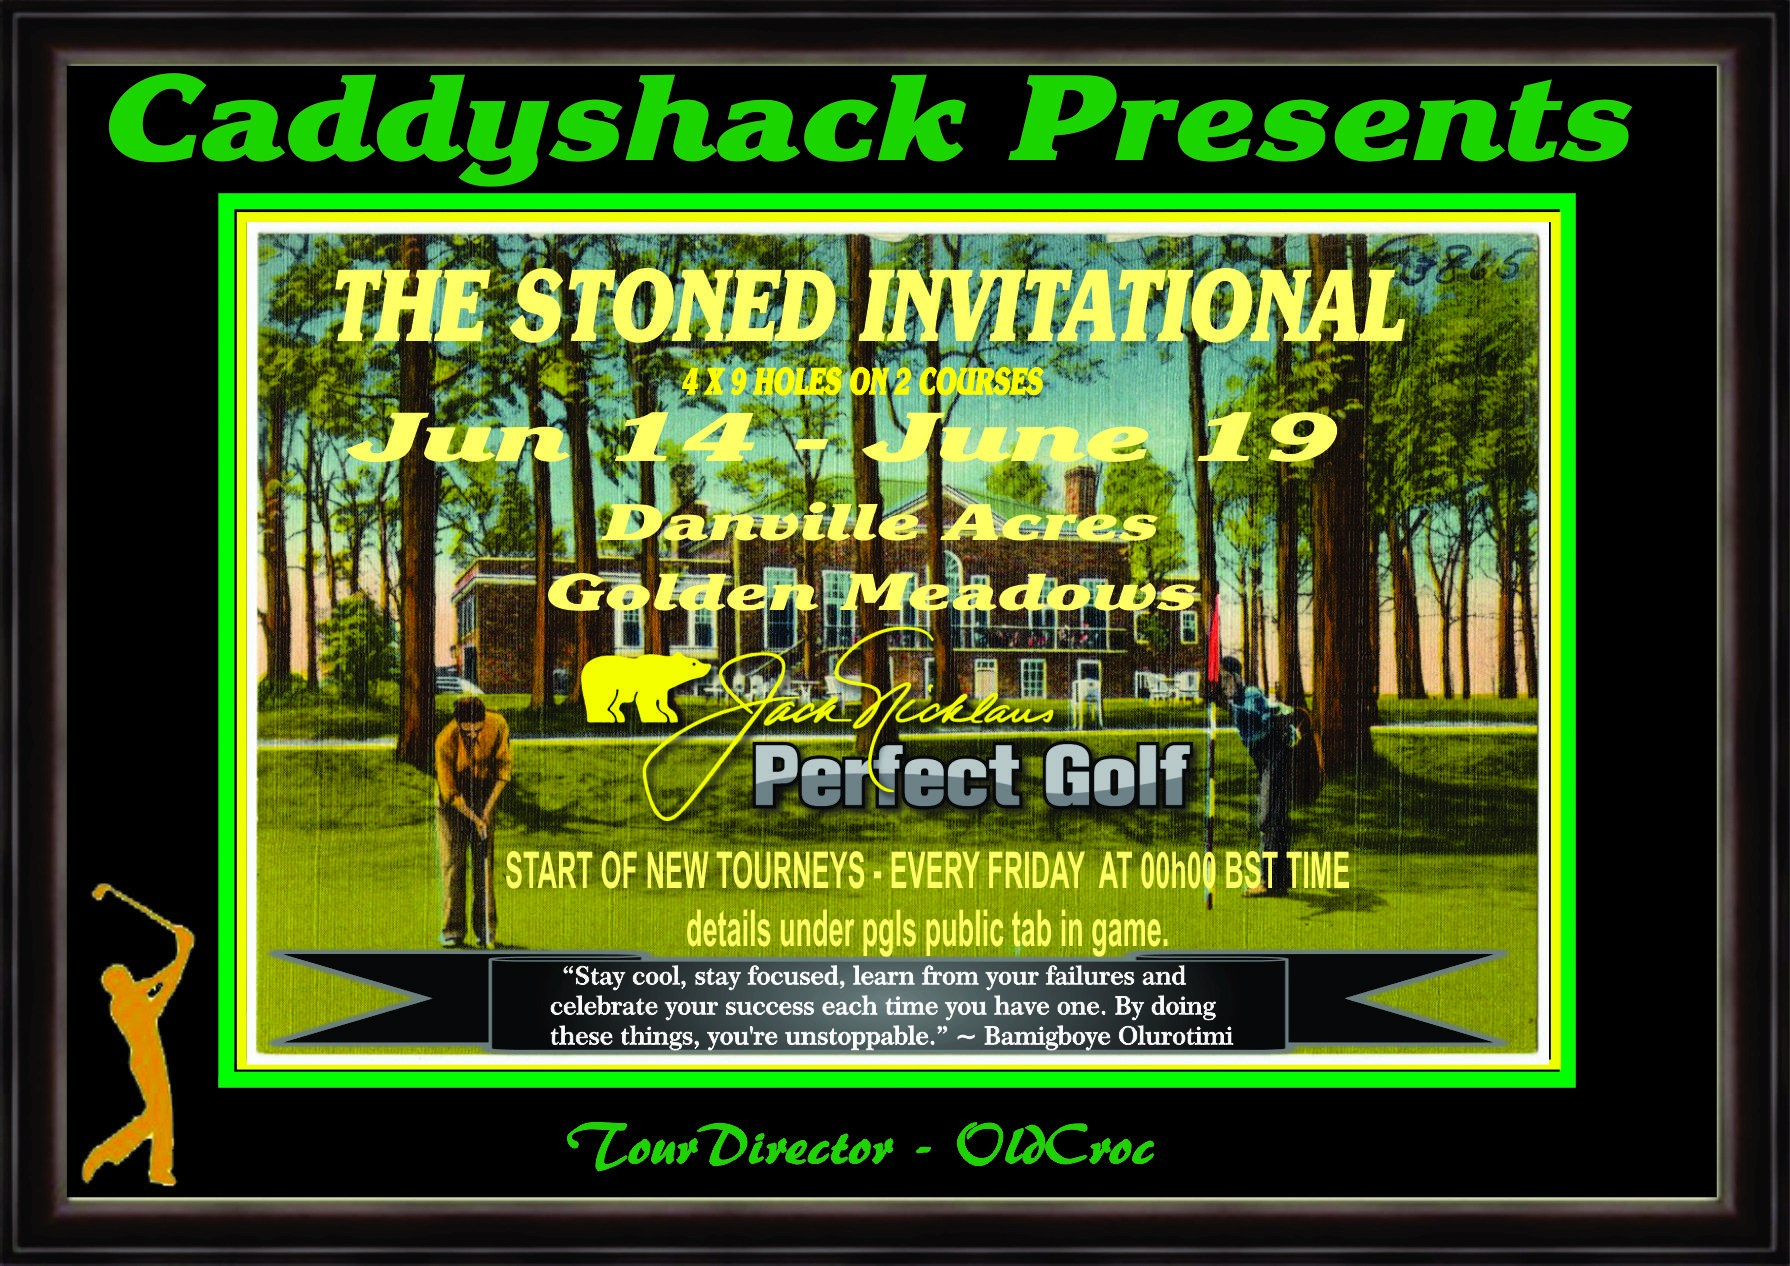 CaddyShack Weekly Tournament Stoned10